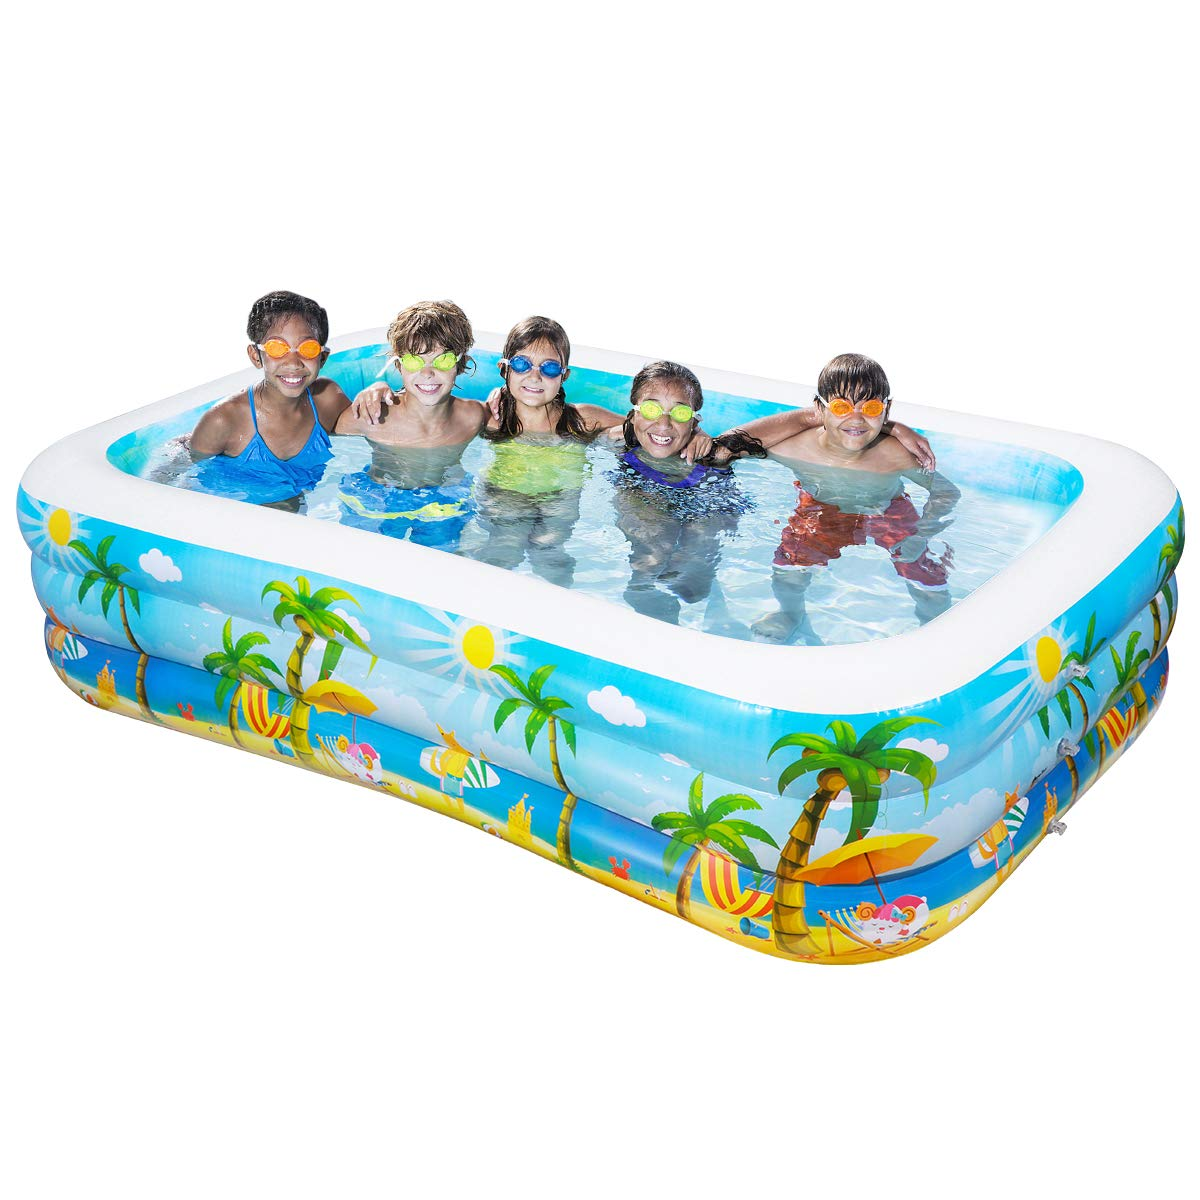 "iBaseToy Giant Inflatable Swimming Pool, Adult Inflatable Pool for Summer  Party, Rectangular Family Swimming Pool for Kids, 103"" x 59"" x 22"", for  Ages ..."